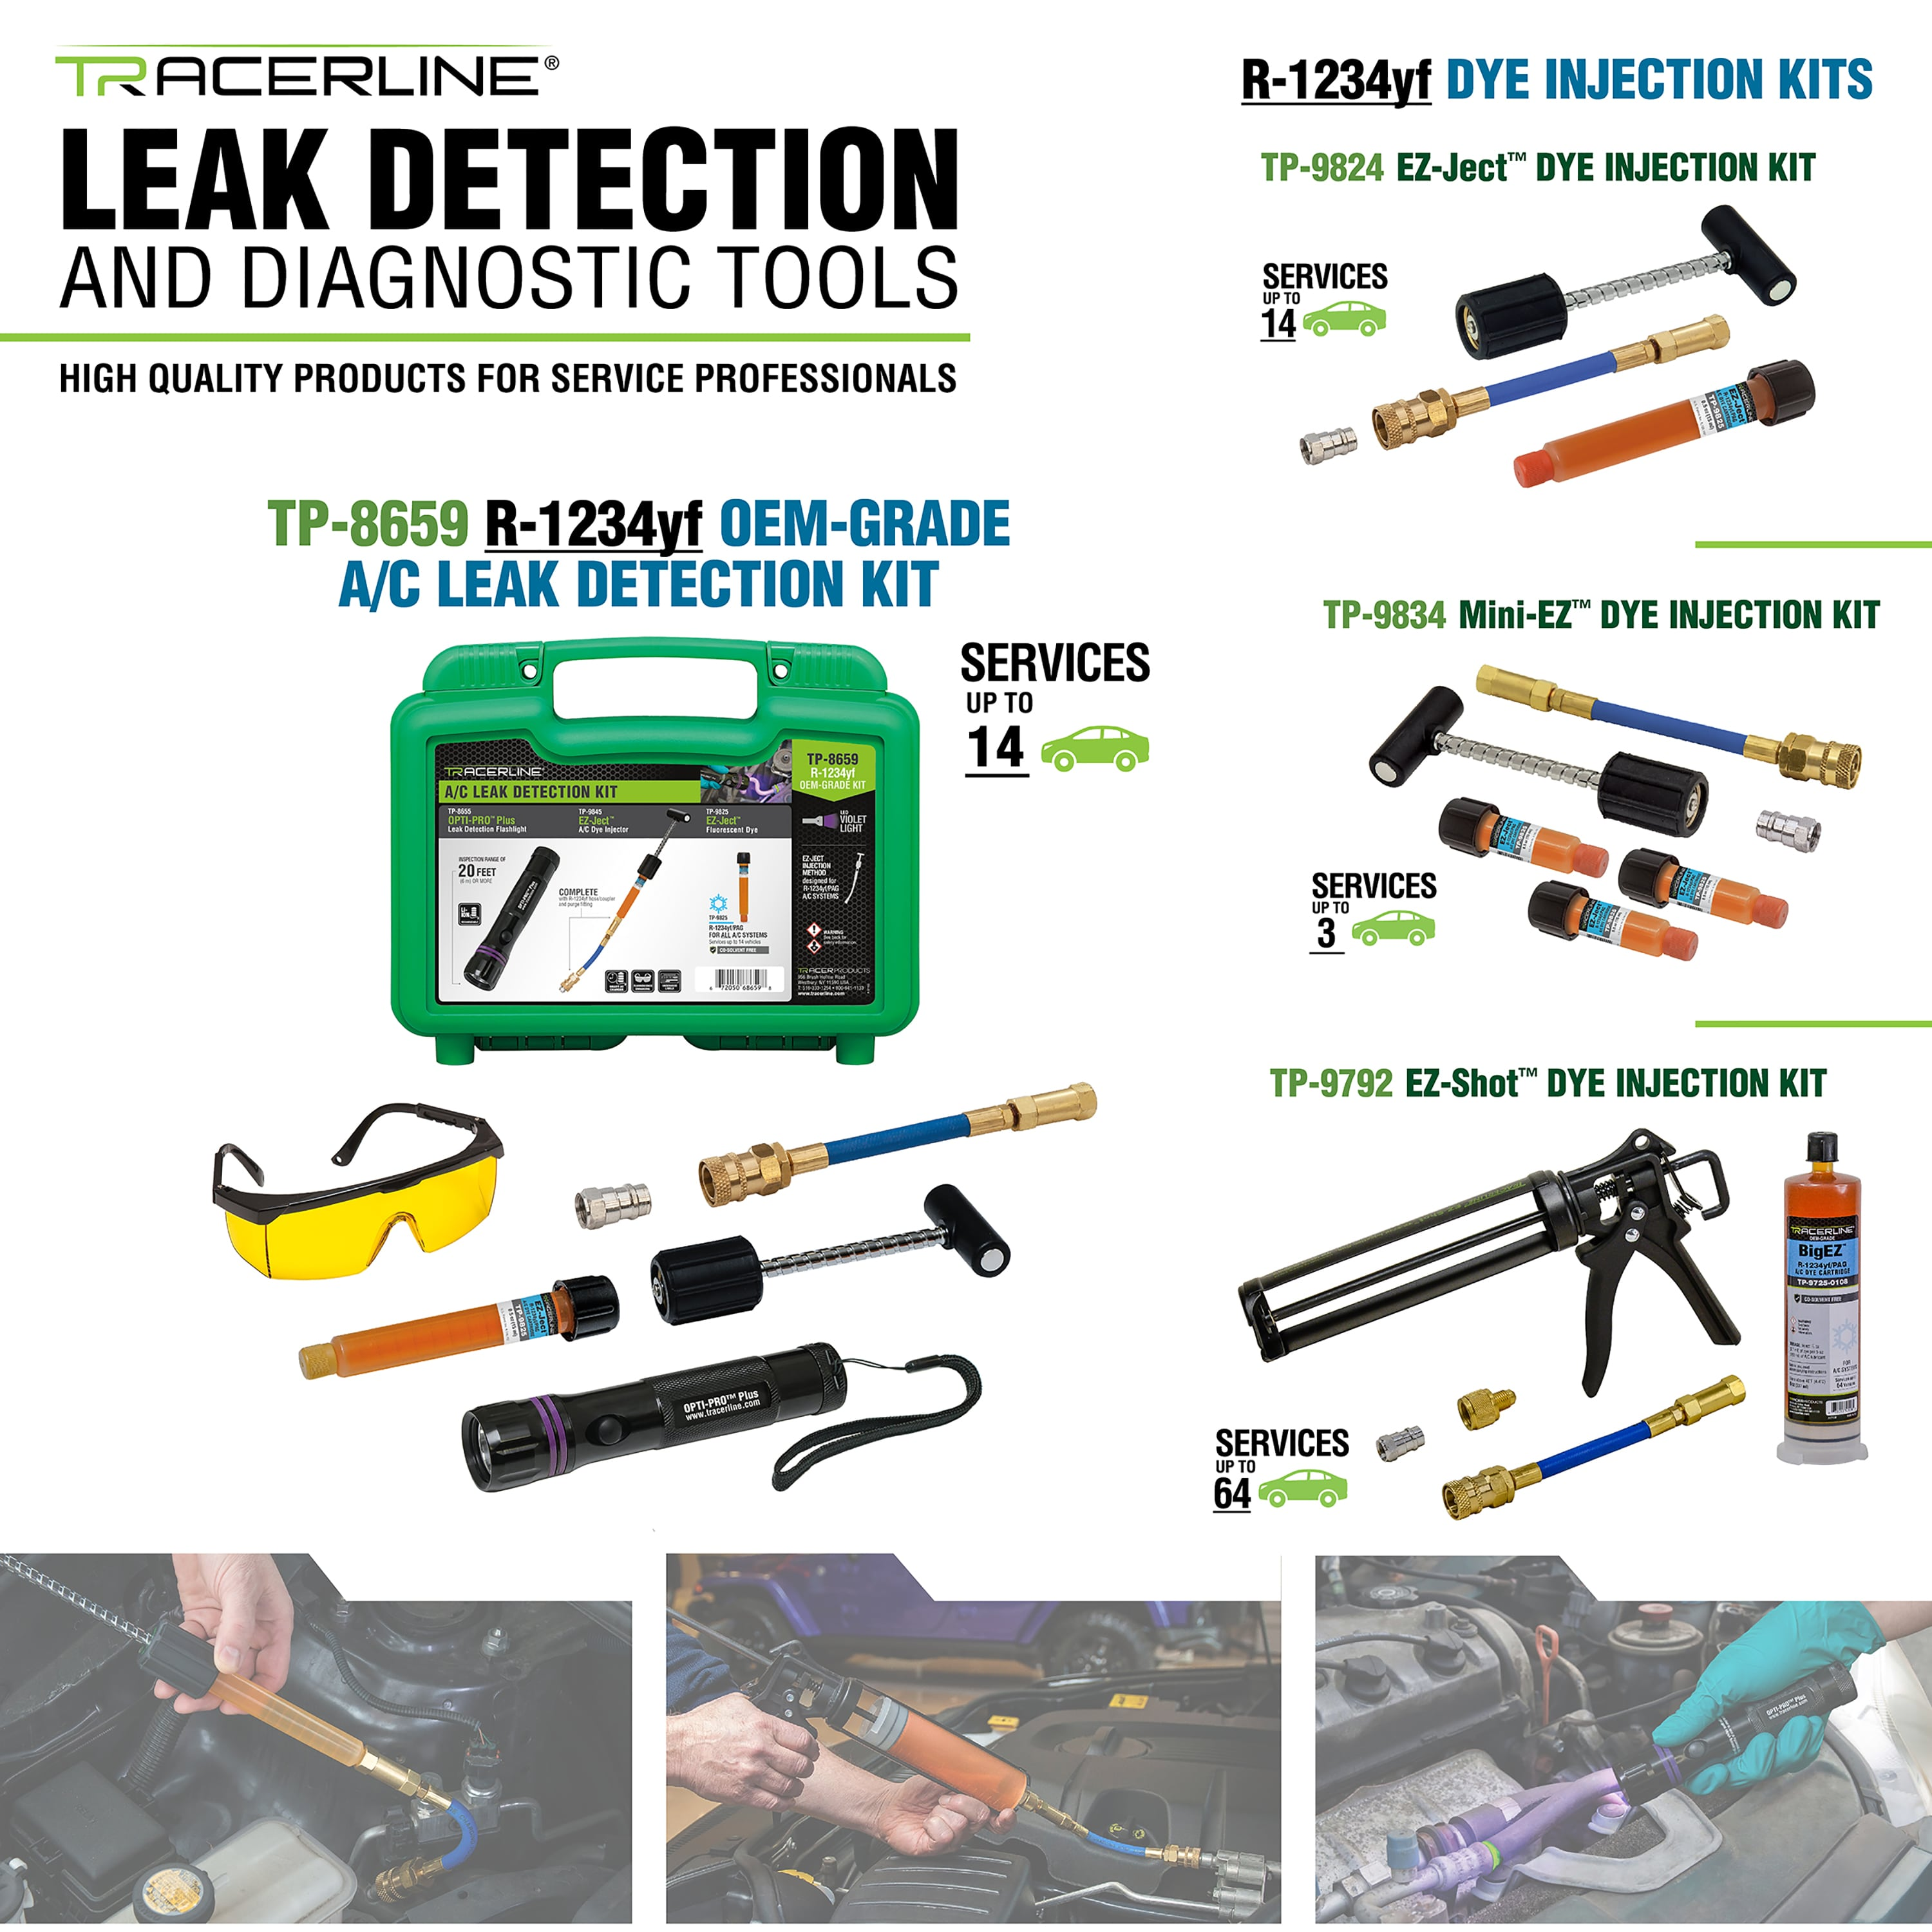 R-1234yf Dye Products and Leak Detection Kits from Tracerline®